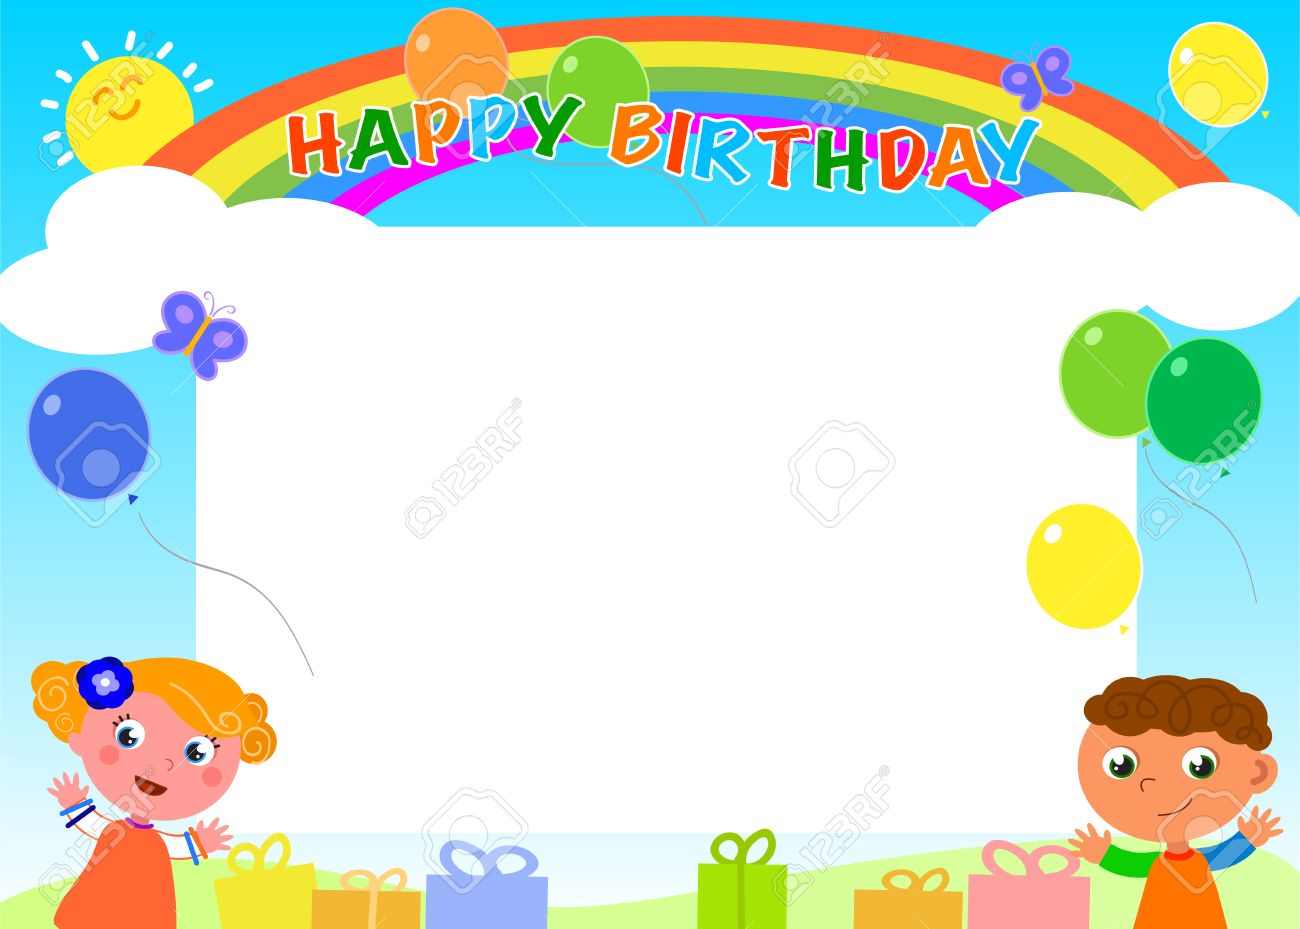 Happy Birthday Frame With Rainbow Kids And Balloons Royalty Free